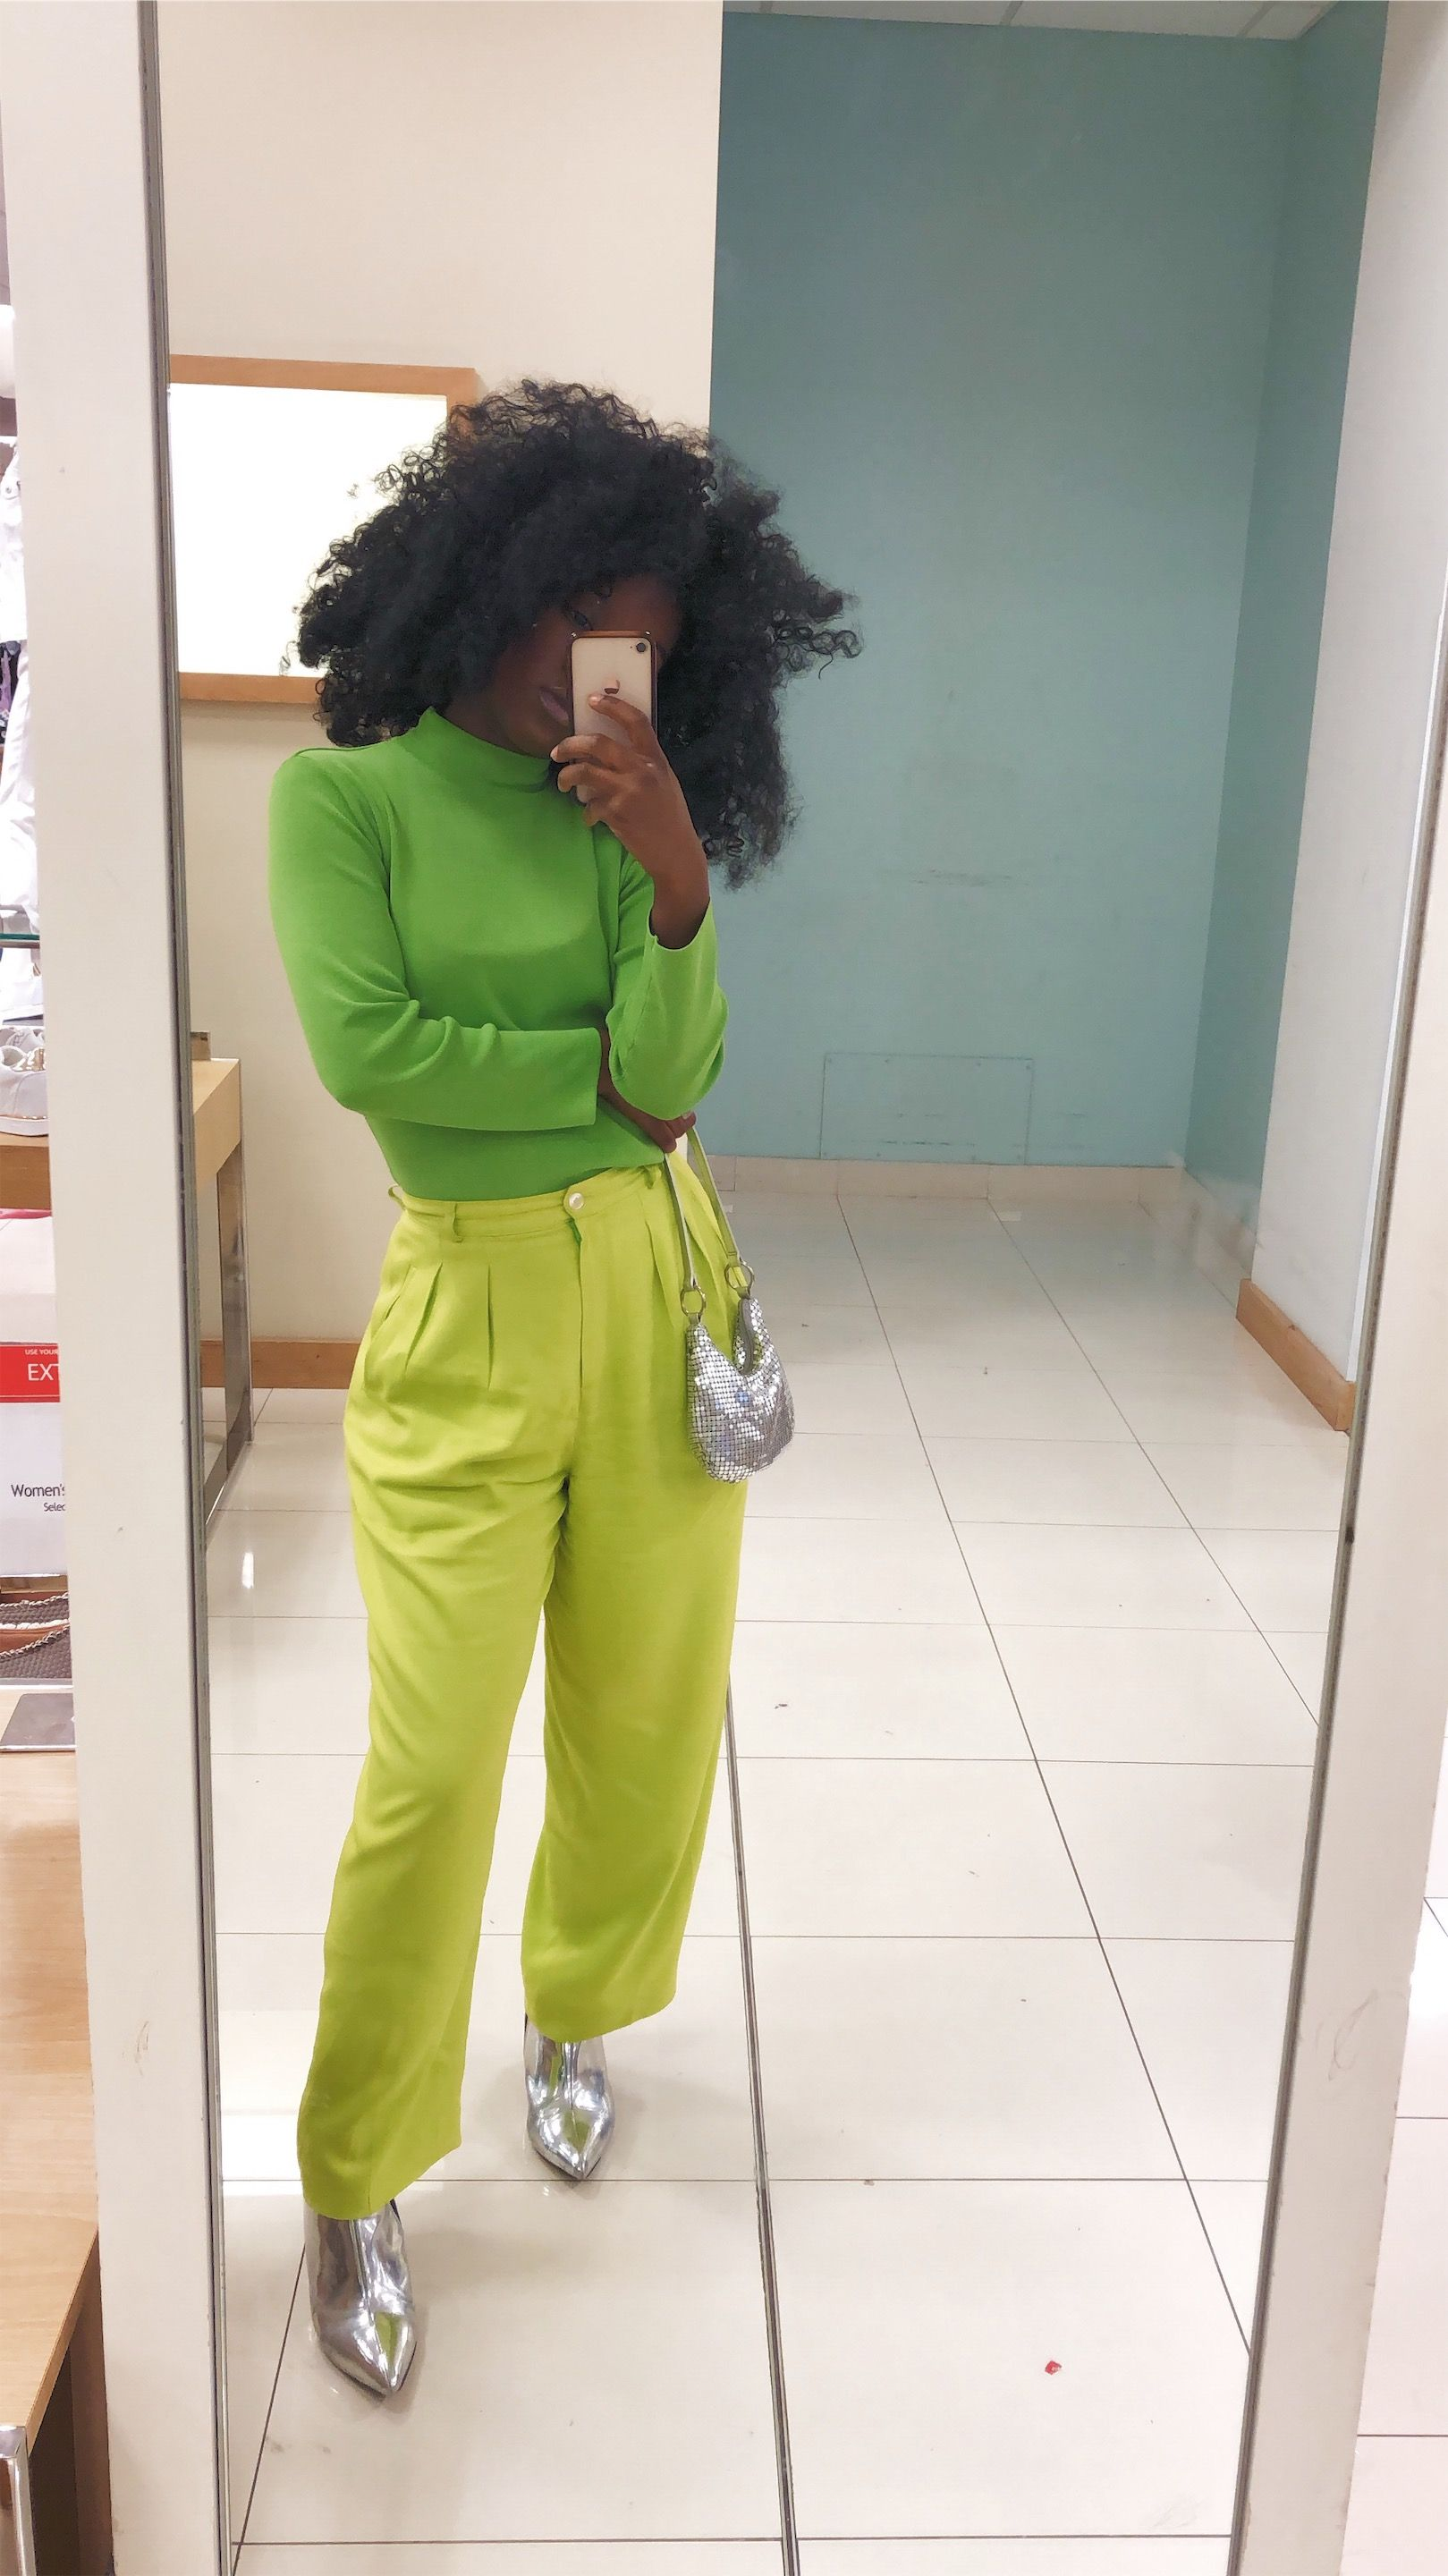 Neon Green Outfit Neon Green Outfits Monochromatic Fashion Green Outfit